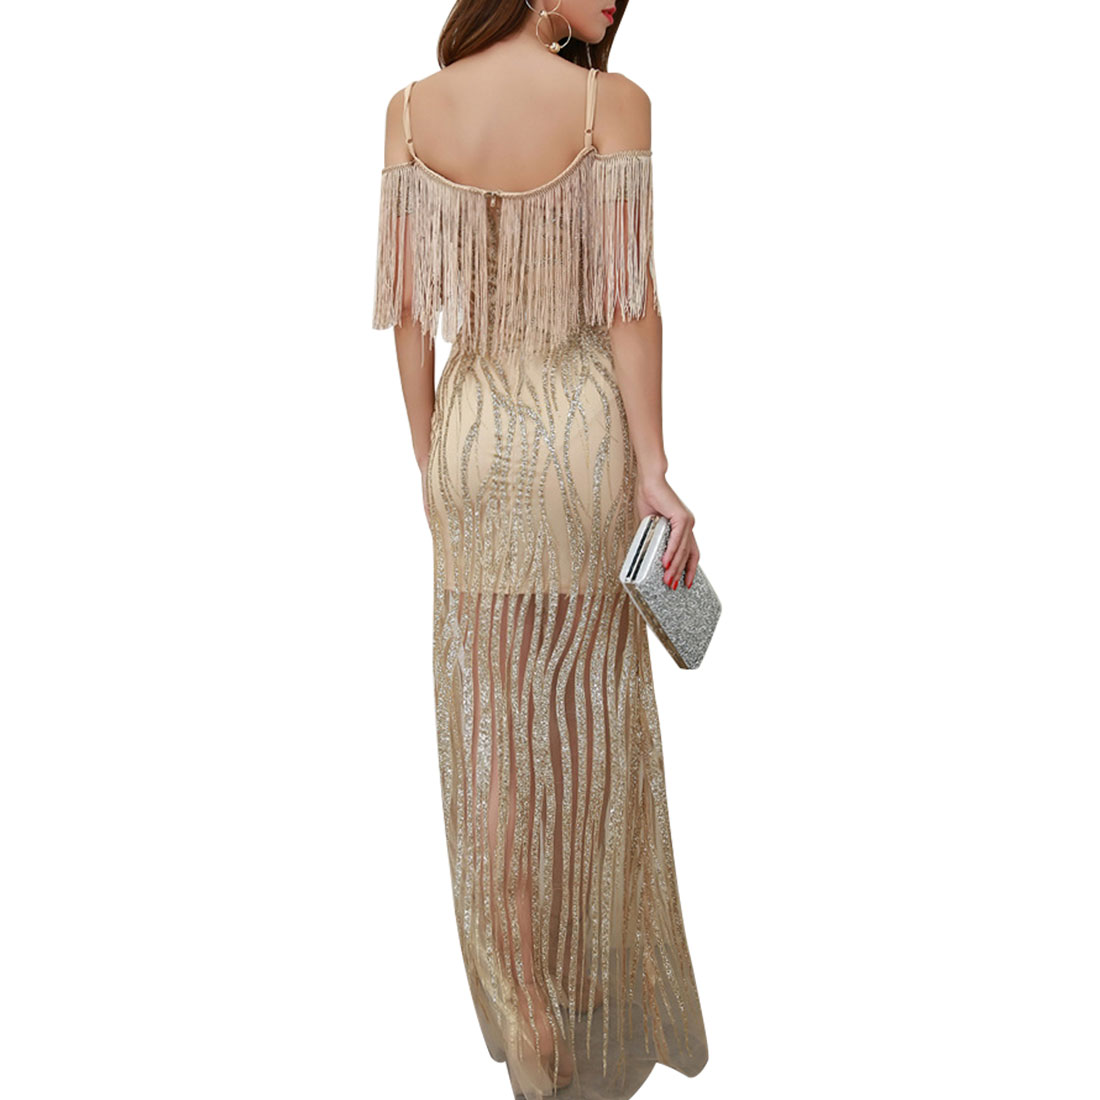 European and American sling sequined sexy halter dress New V neck deep hanging dress dress women 39 s fringed hot diamond dress in Dresses from Women 39 s Clothing